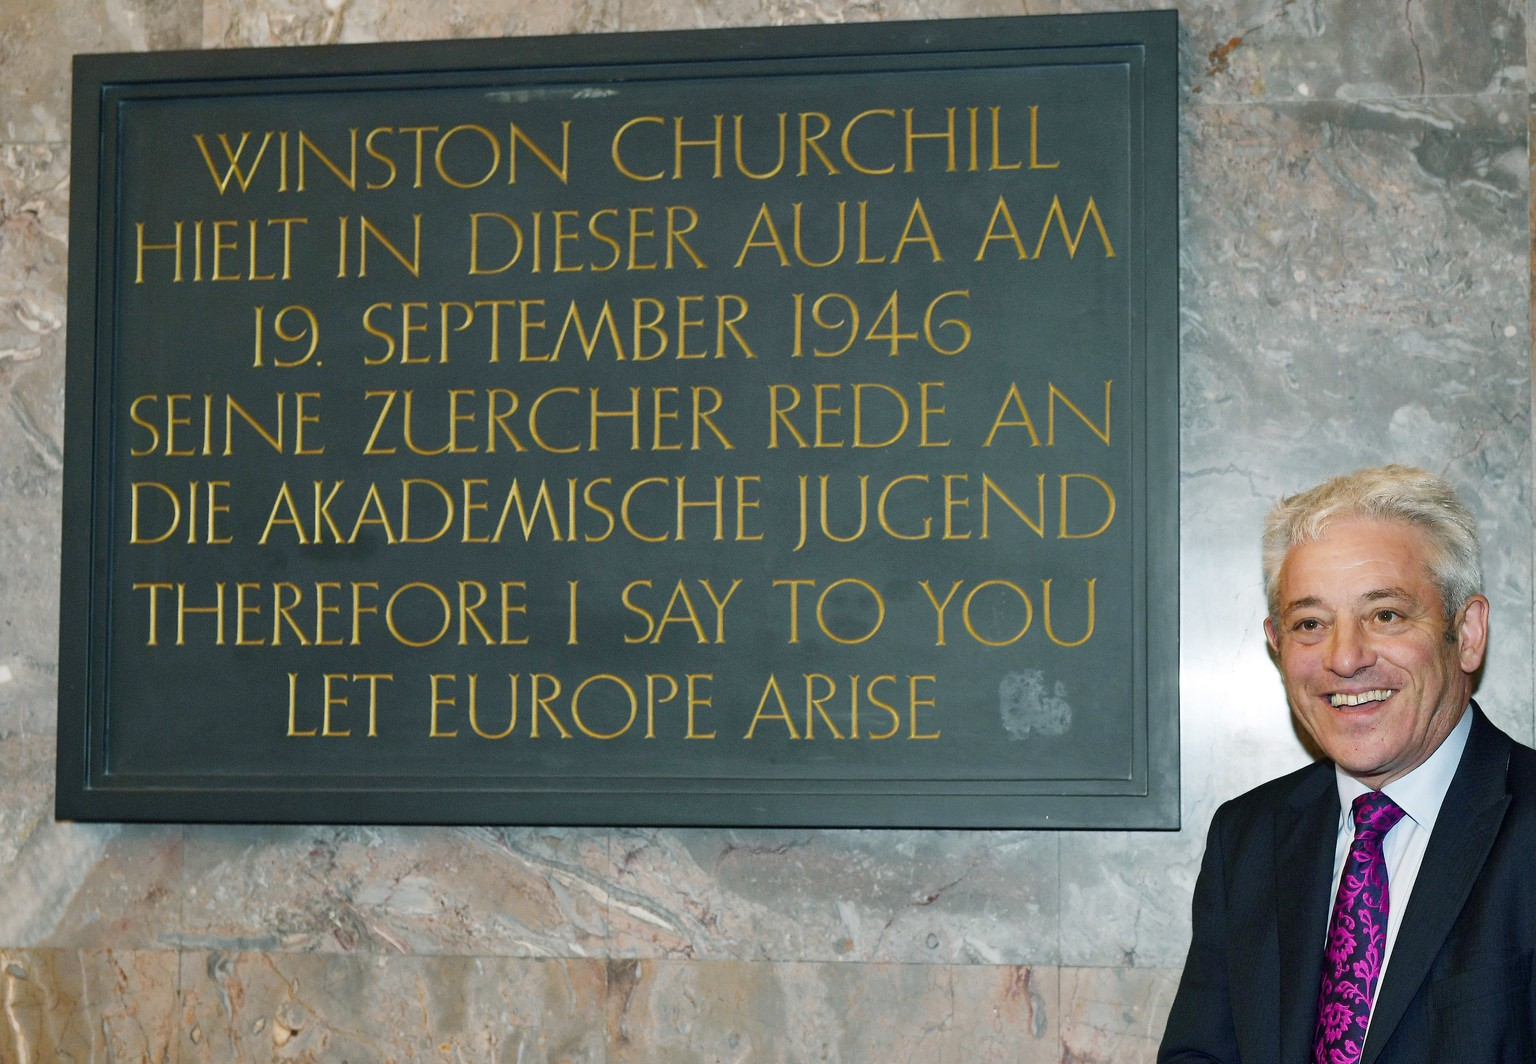 epa07853864 John Bercow, Speaker of Britain's House of Commons, poses in front of the plaque of Winston Churchill  at the Europa Institut at the University of Zurich, Switzerland, 19 September 2019.  EPA/WALTER BIERI